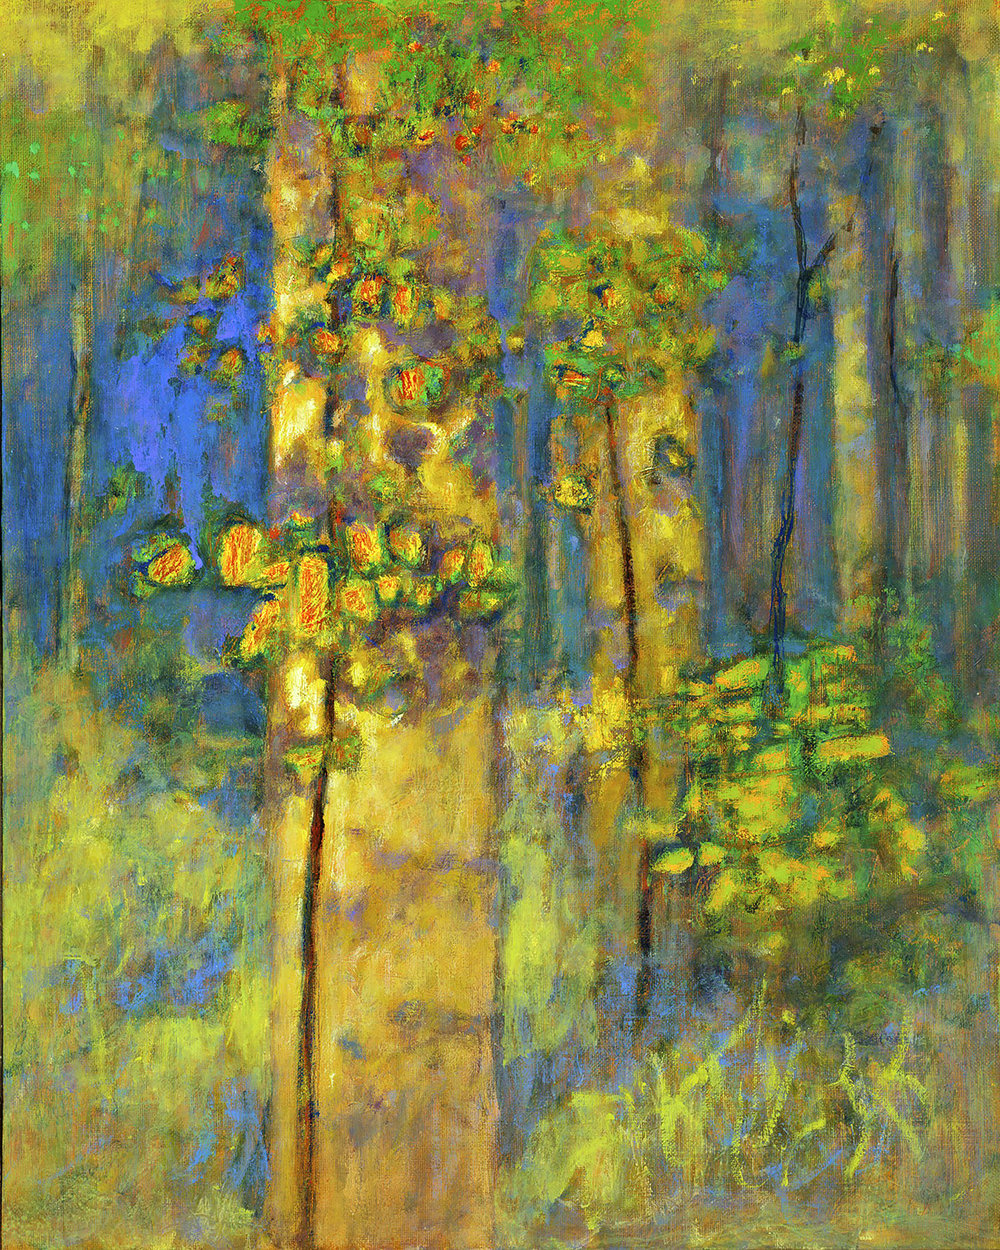 73-14 Sylvan Light II.jpg